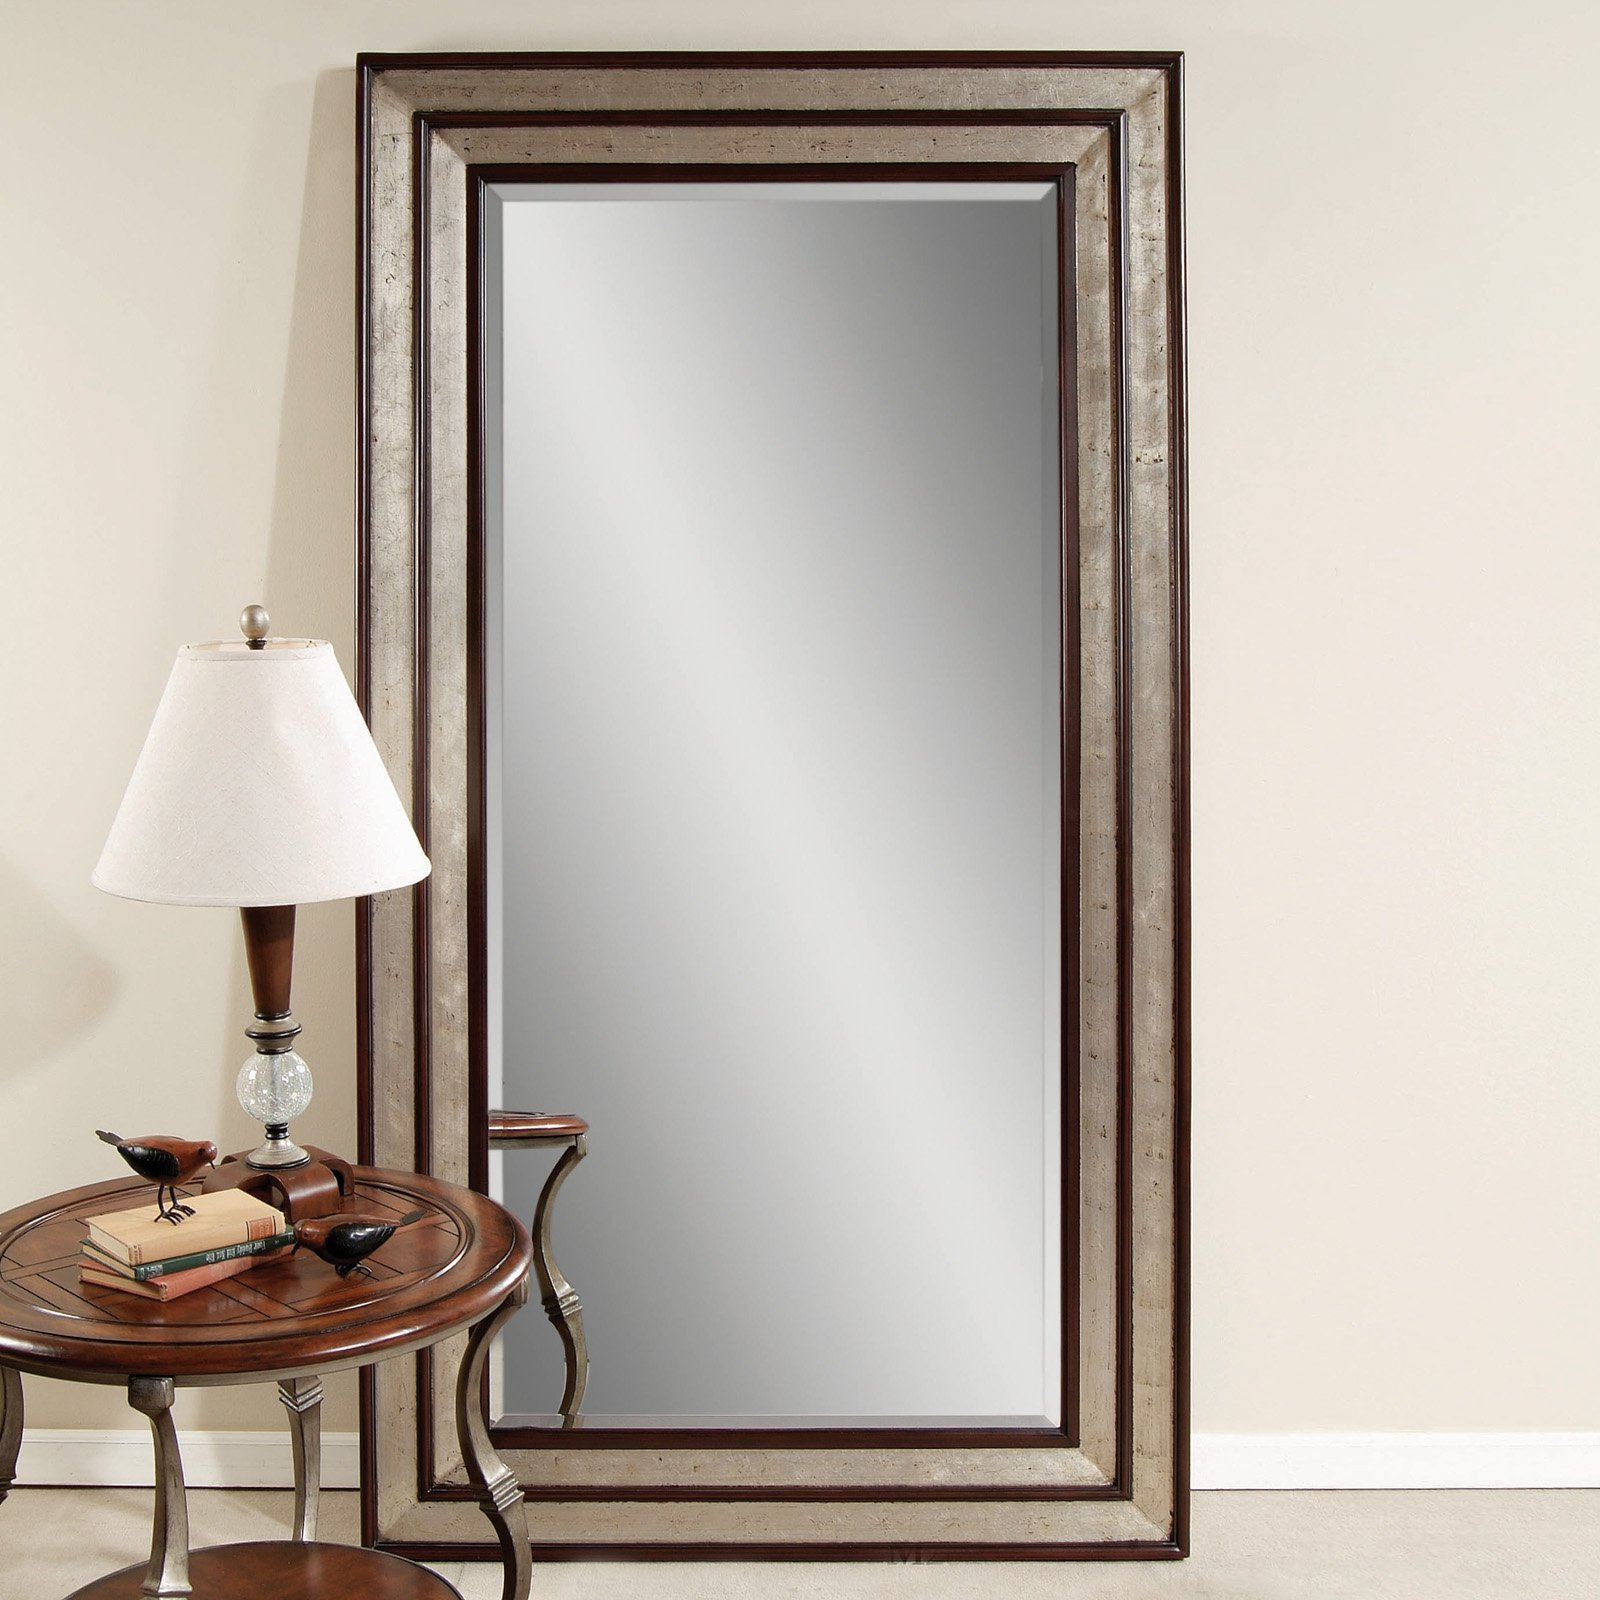 Silver Leaf Black Accent Floor Leaner Mirror W X H Fall Pertaining To Silver Frame Accent Mirrors (View 15 of 20)